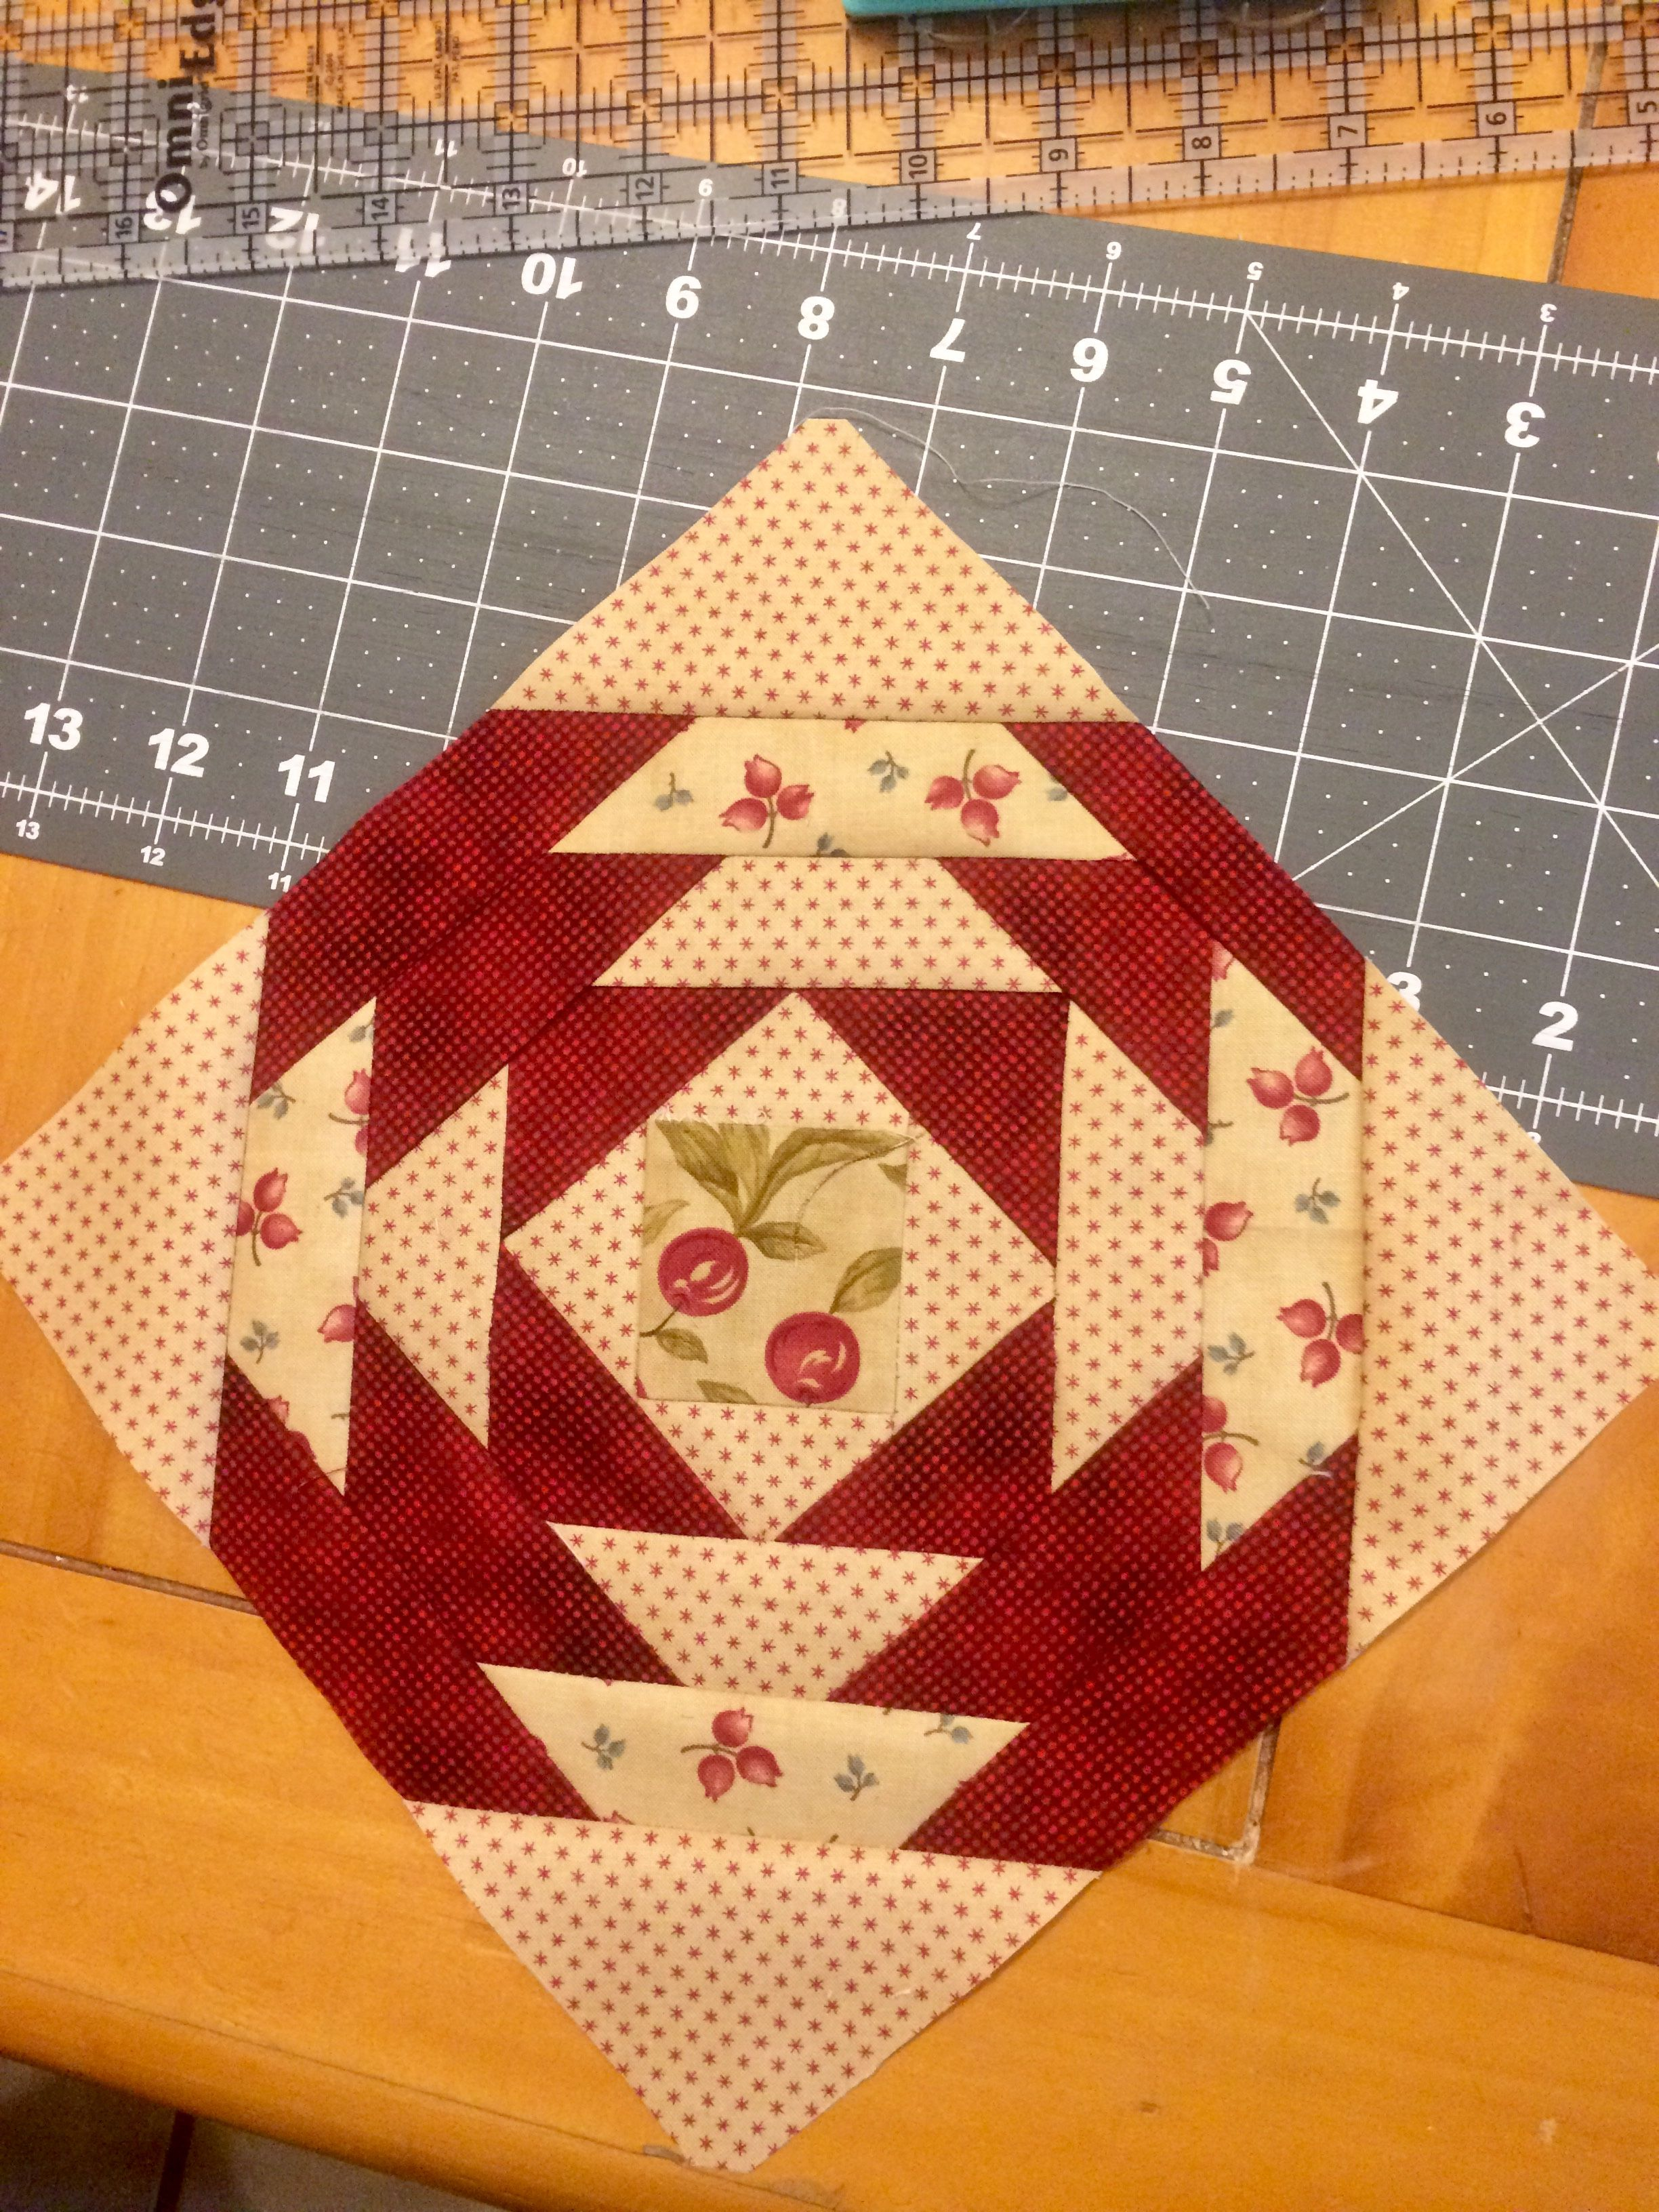 Square | quilting ideas | Pinterest | Patchwork, Patterns and Sewing ...